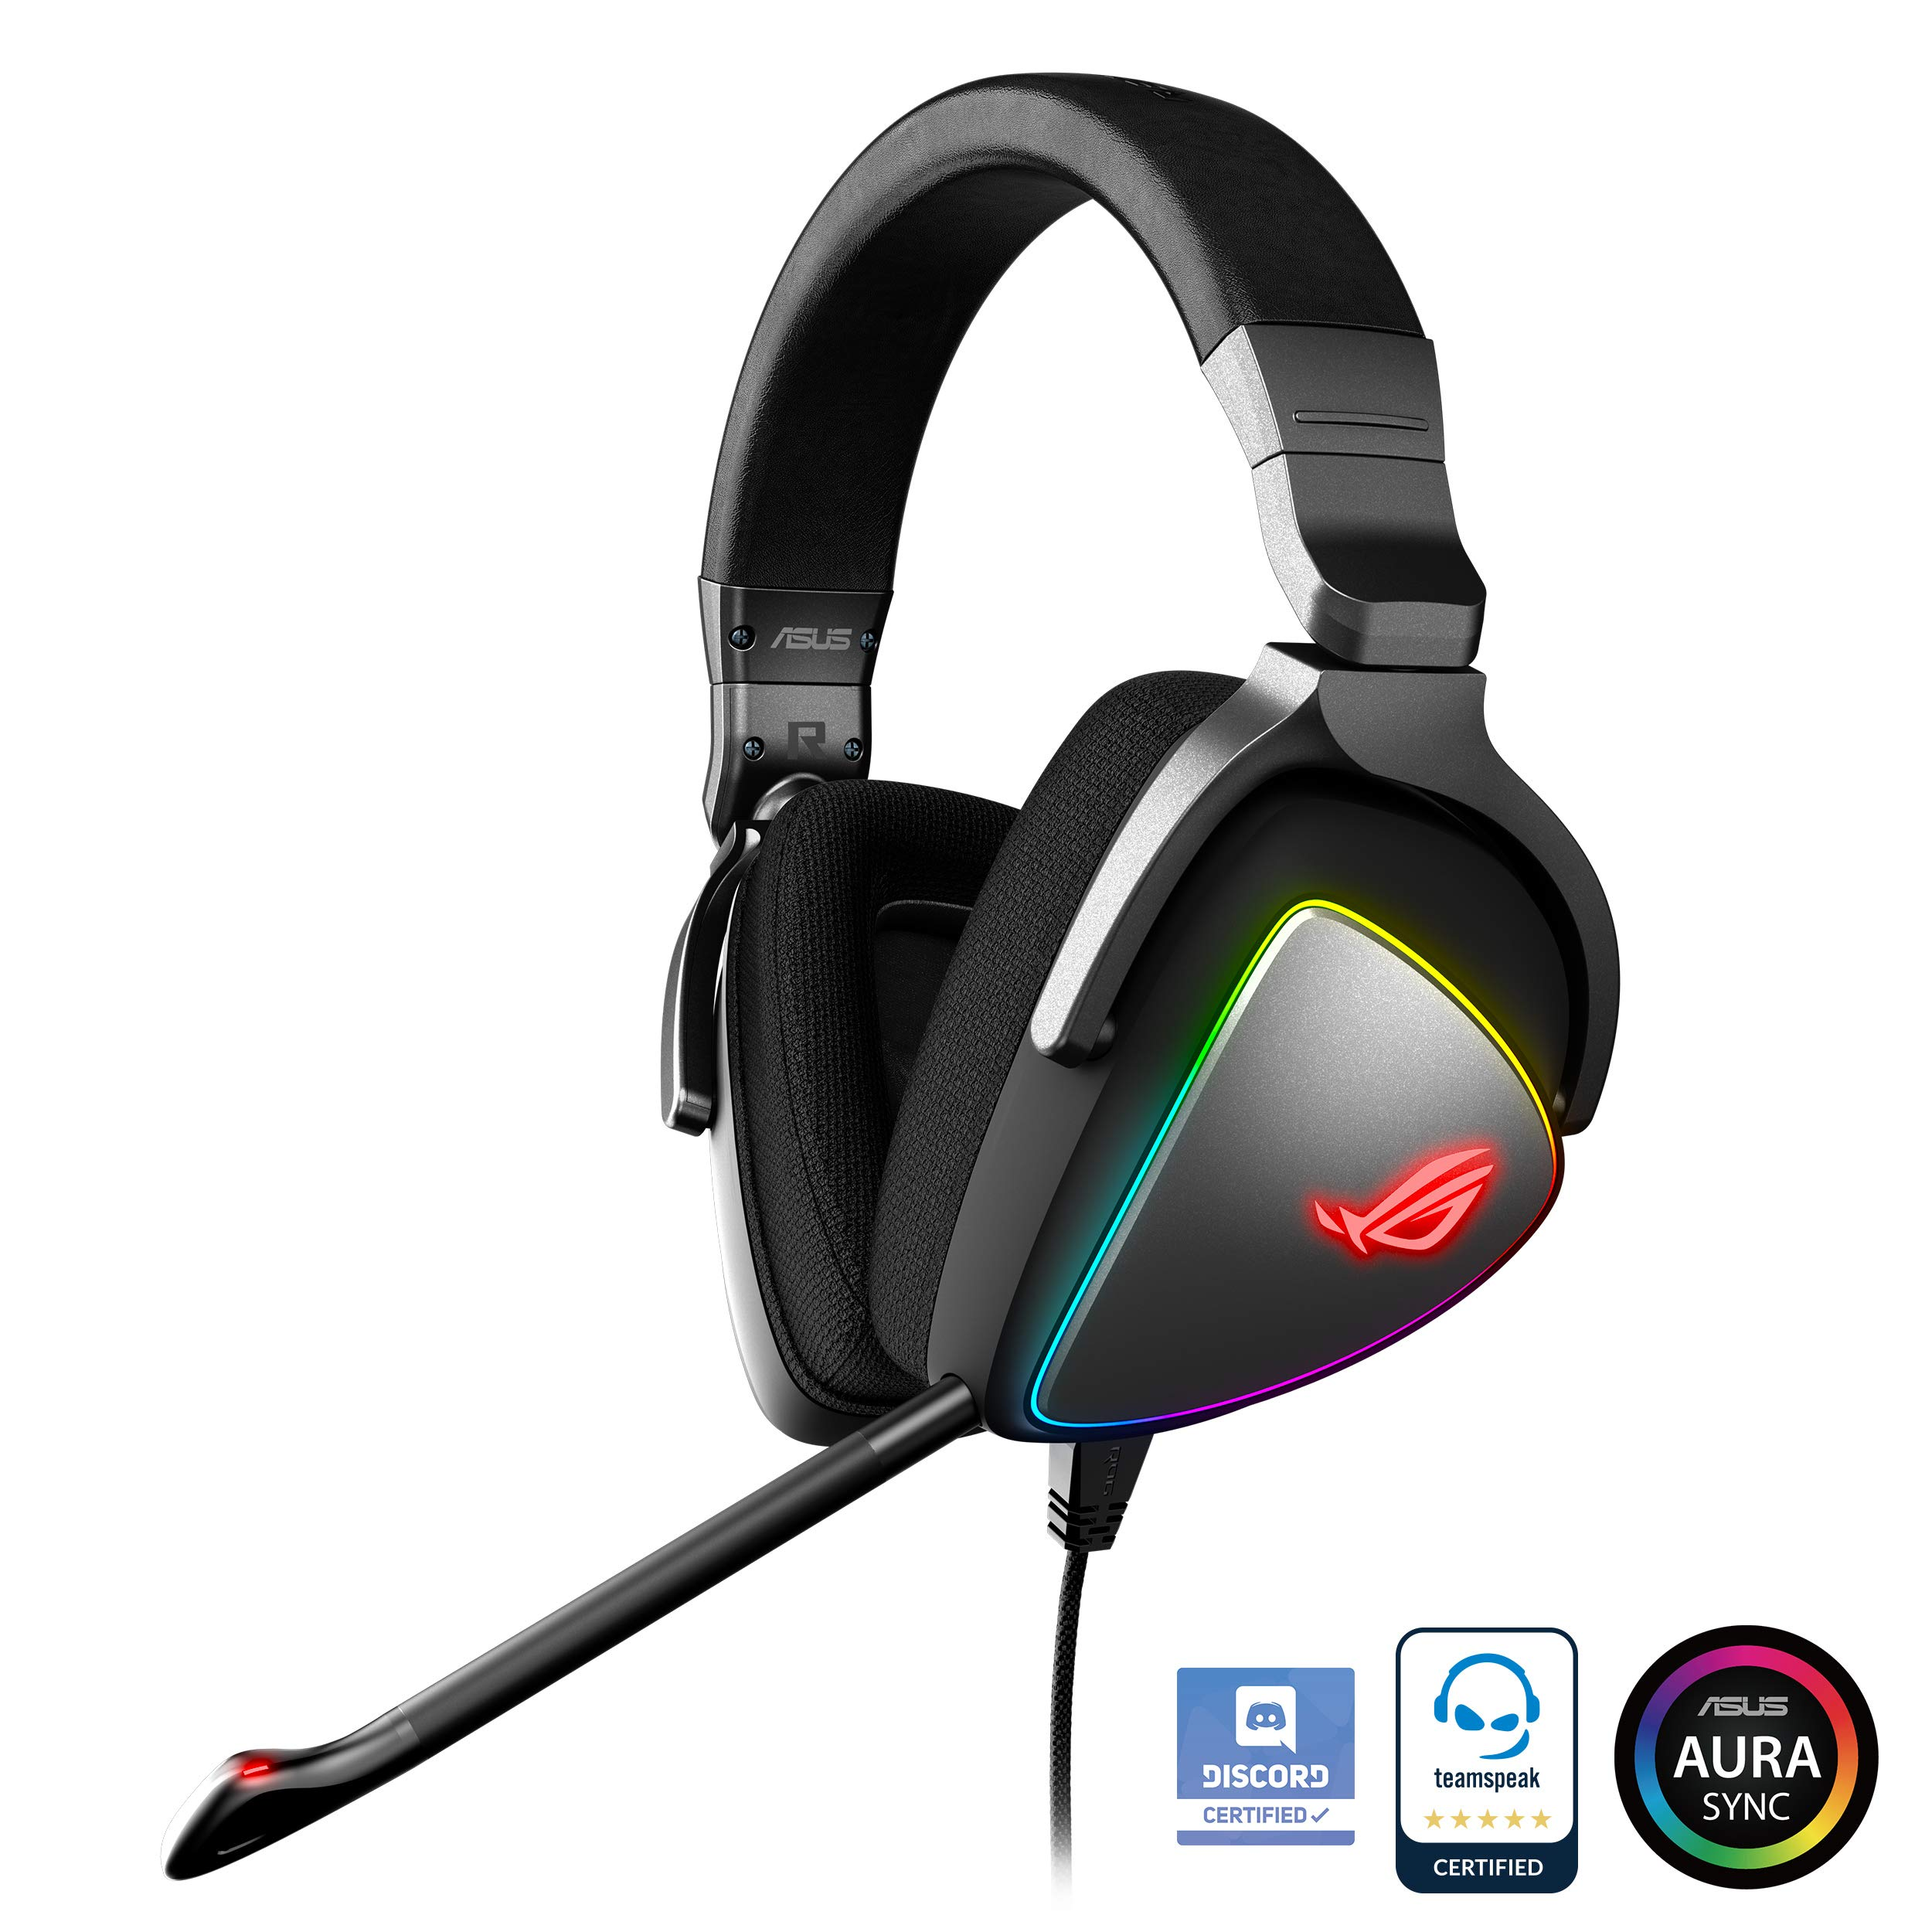 ASUS ROG Delta USB-C Gaming Headset for PC, Mac, Playstation 4, Teamspeak, and Discord with Hi-Res ESS Quad-DAC, Digital Microphone, and Aura Sync RGB Lighting by ASUS